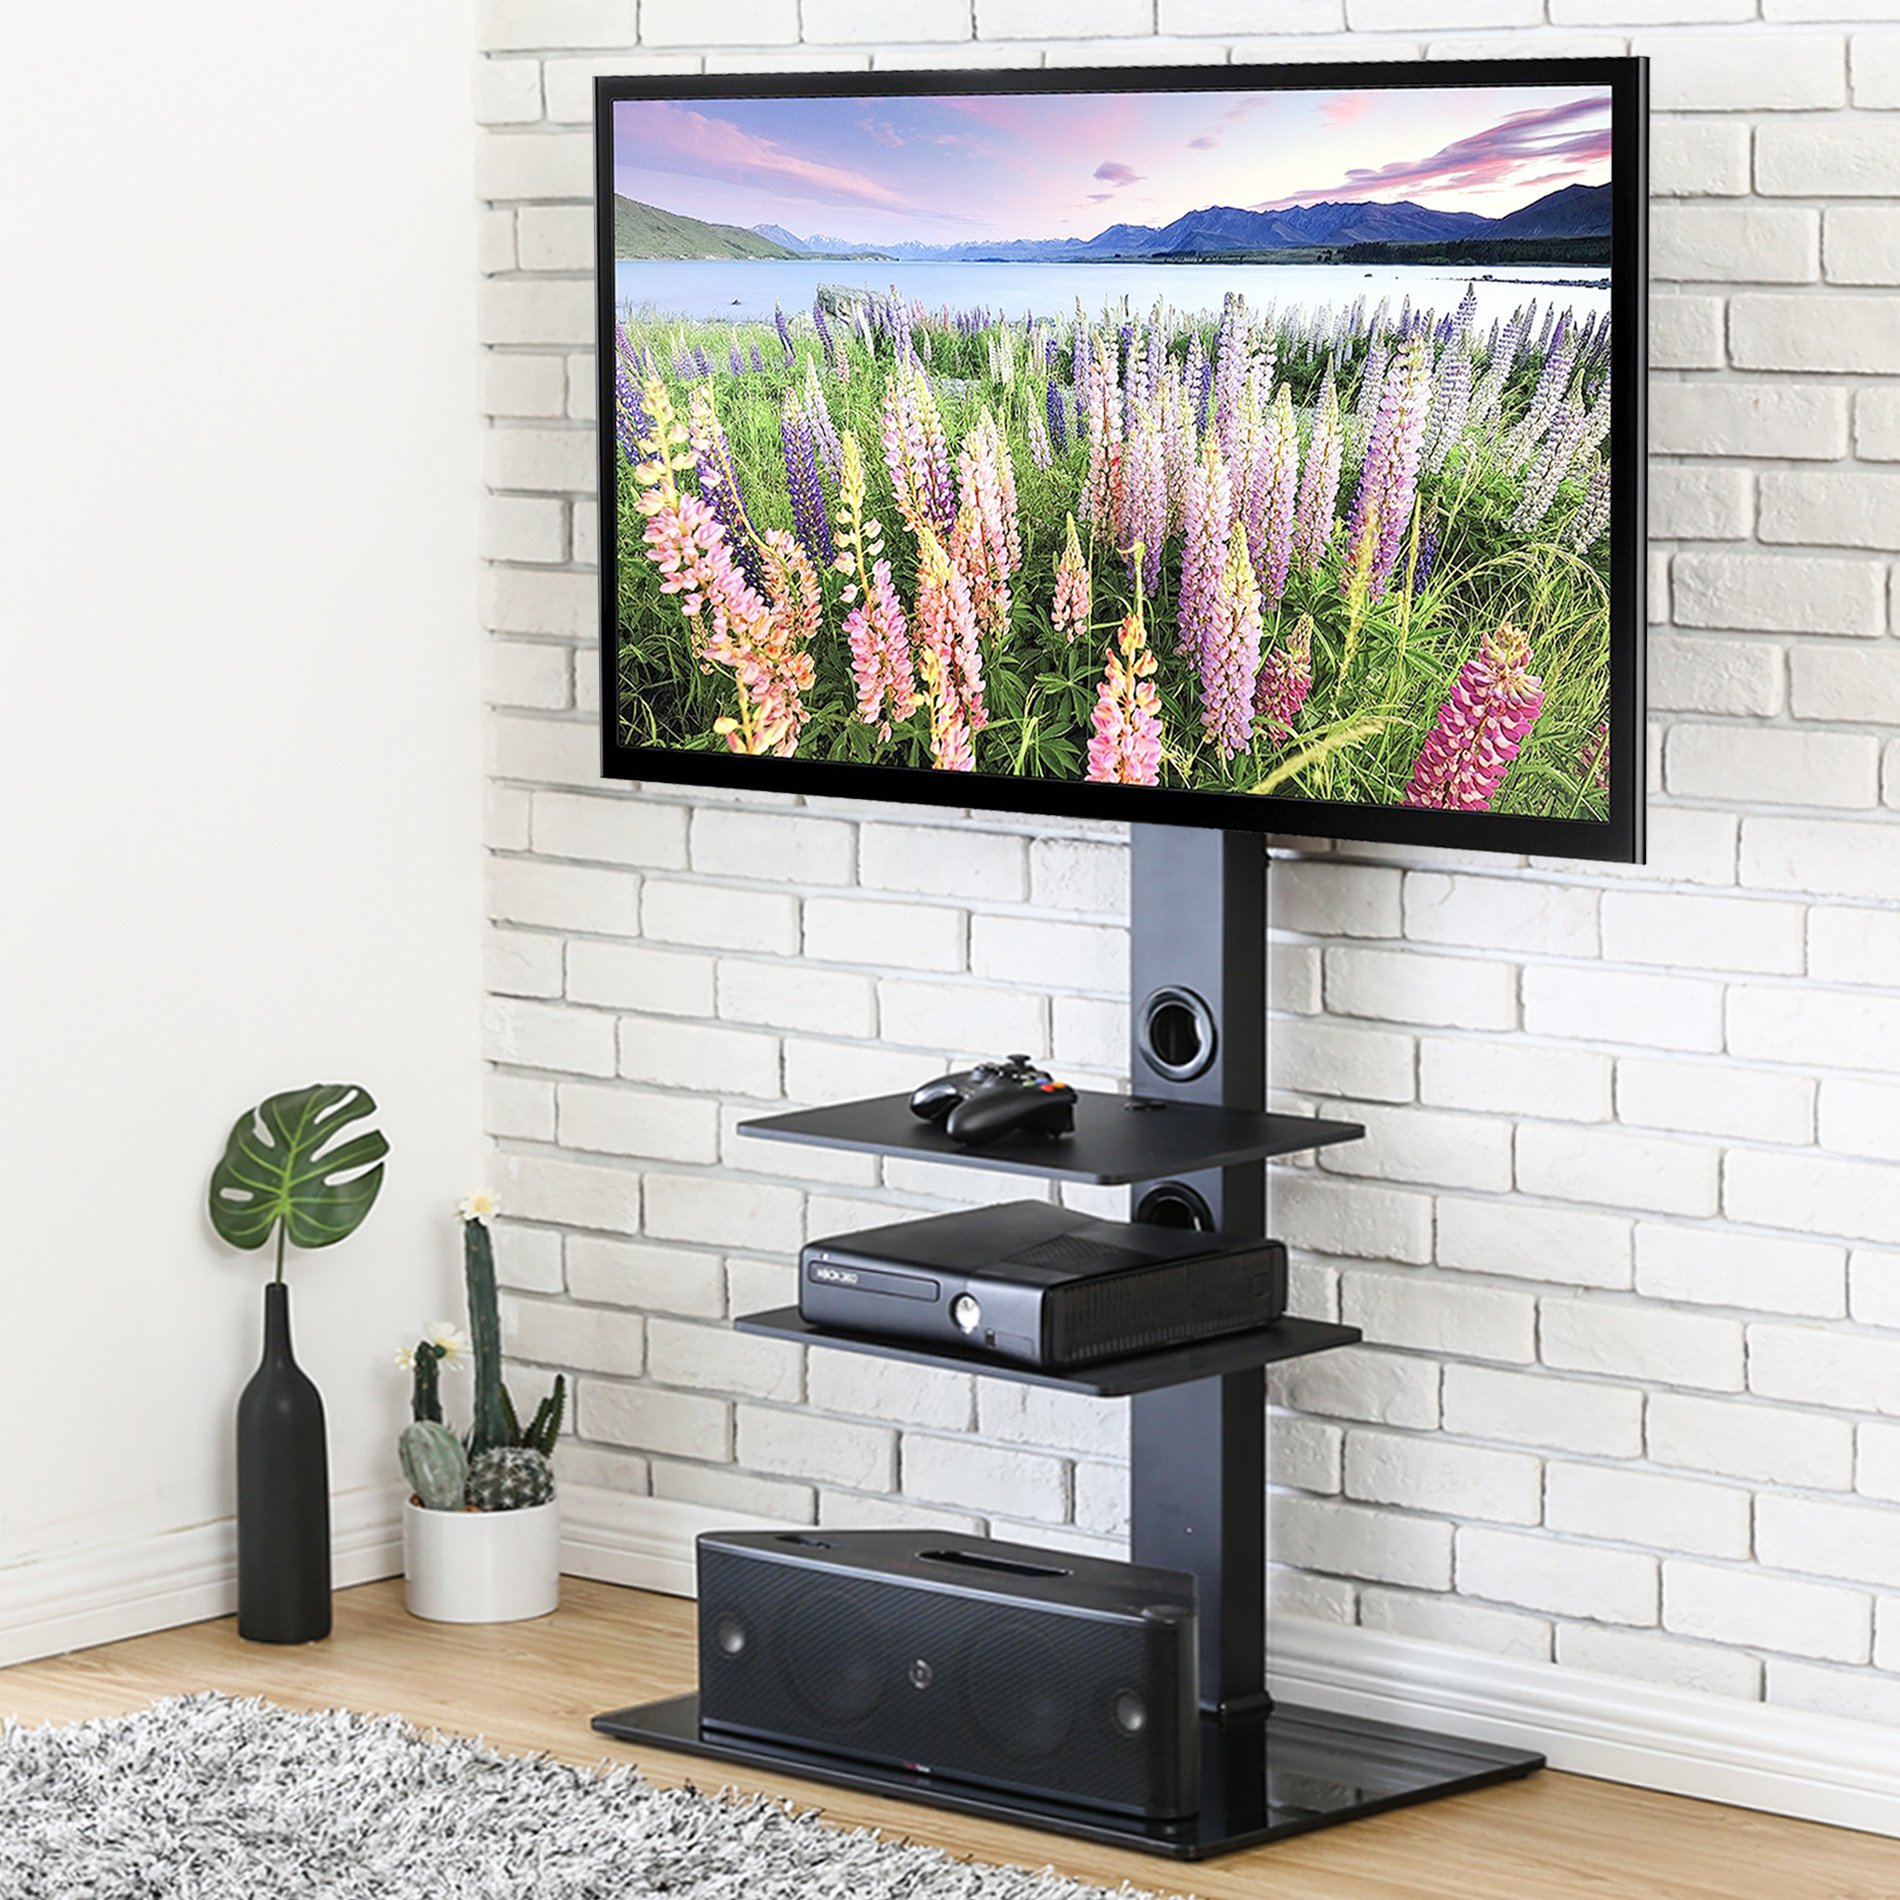 FITUEYES Swivel TV Stand with Mount for 32-65 Inch,TT307001MB-G by FITÜEYES